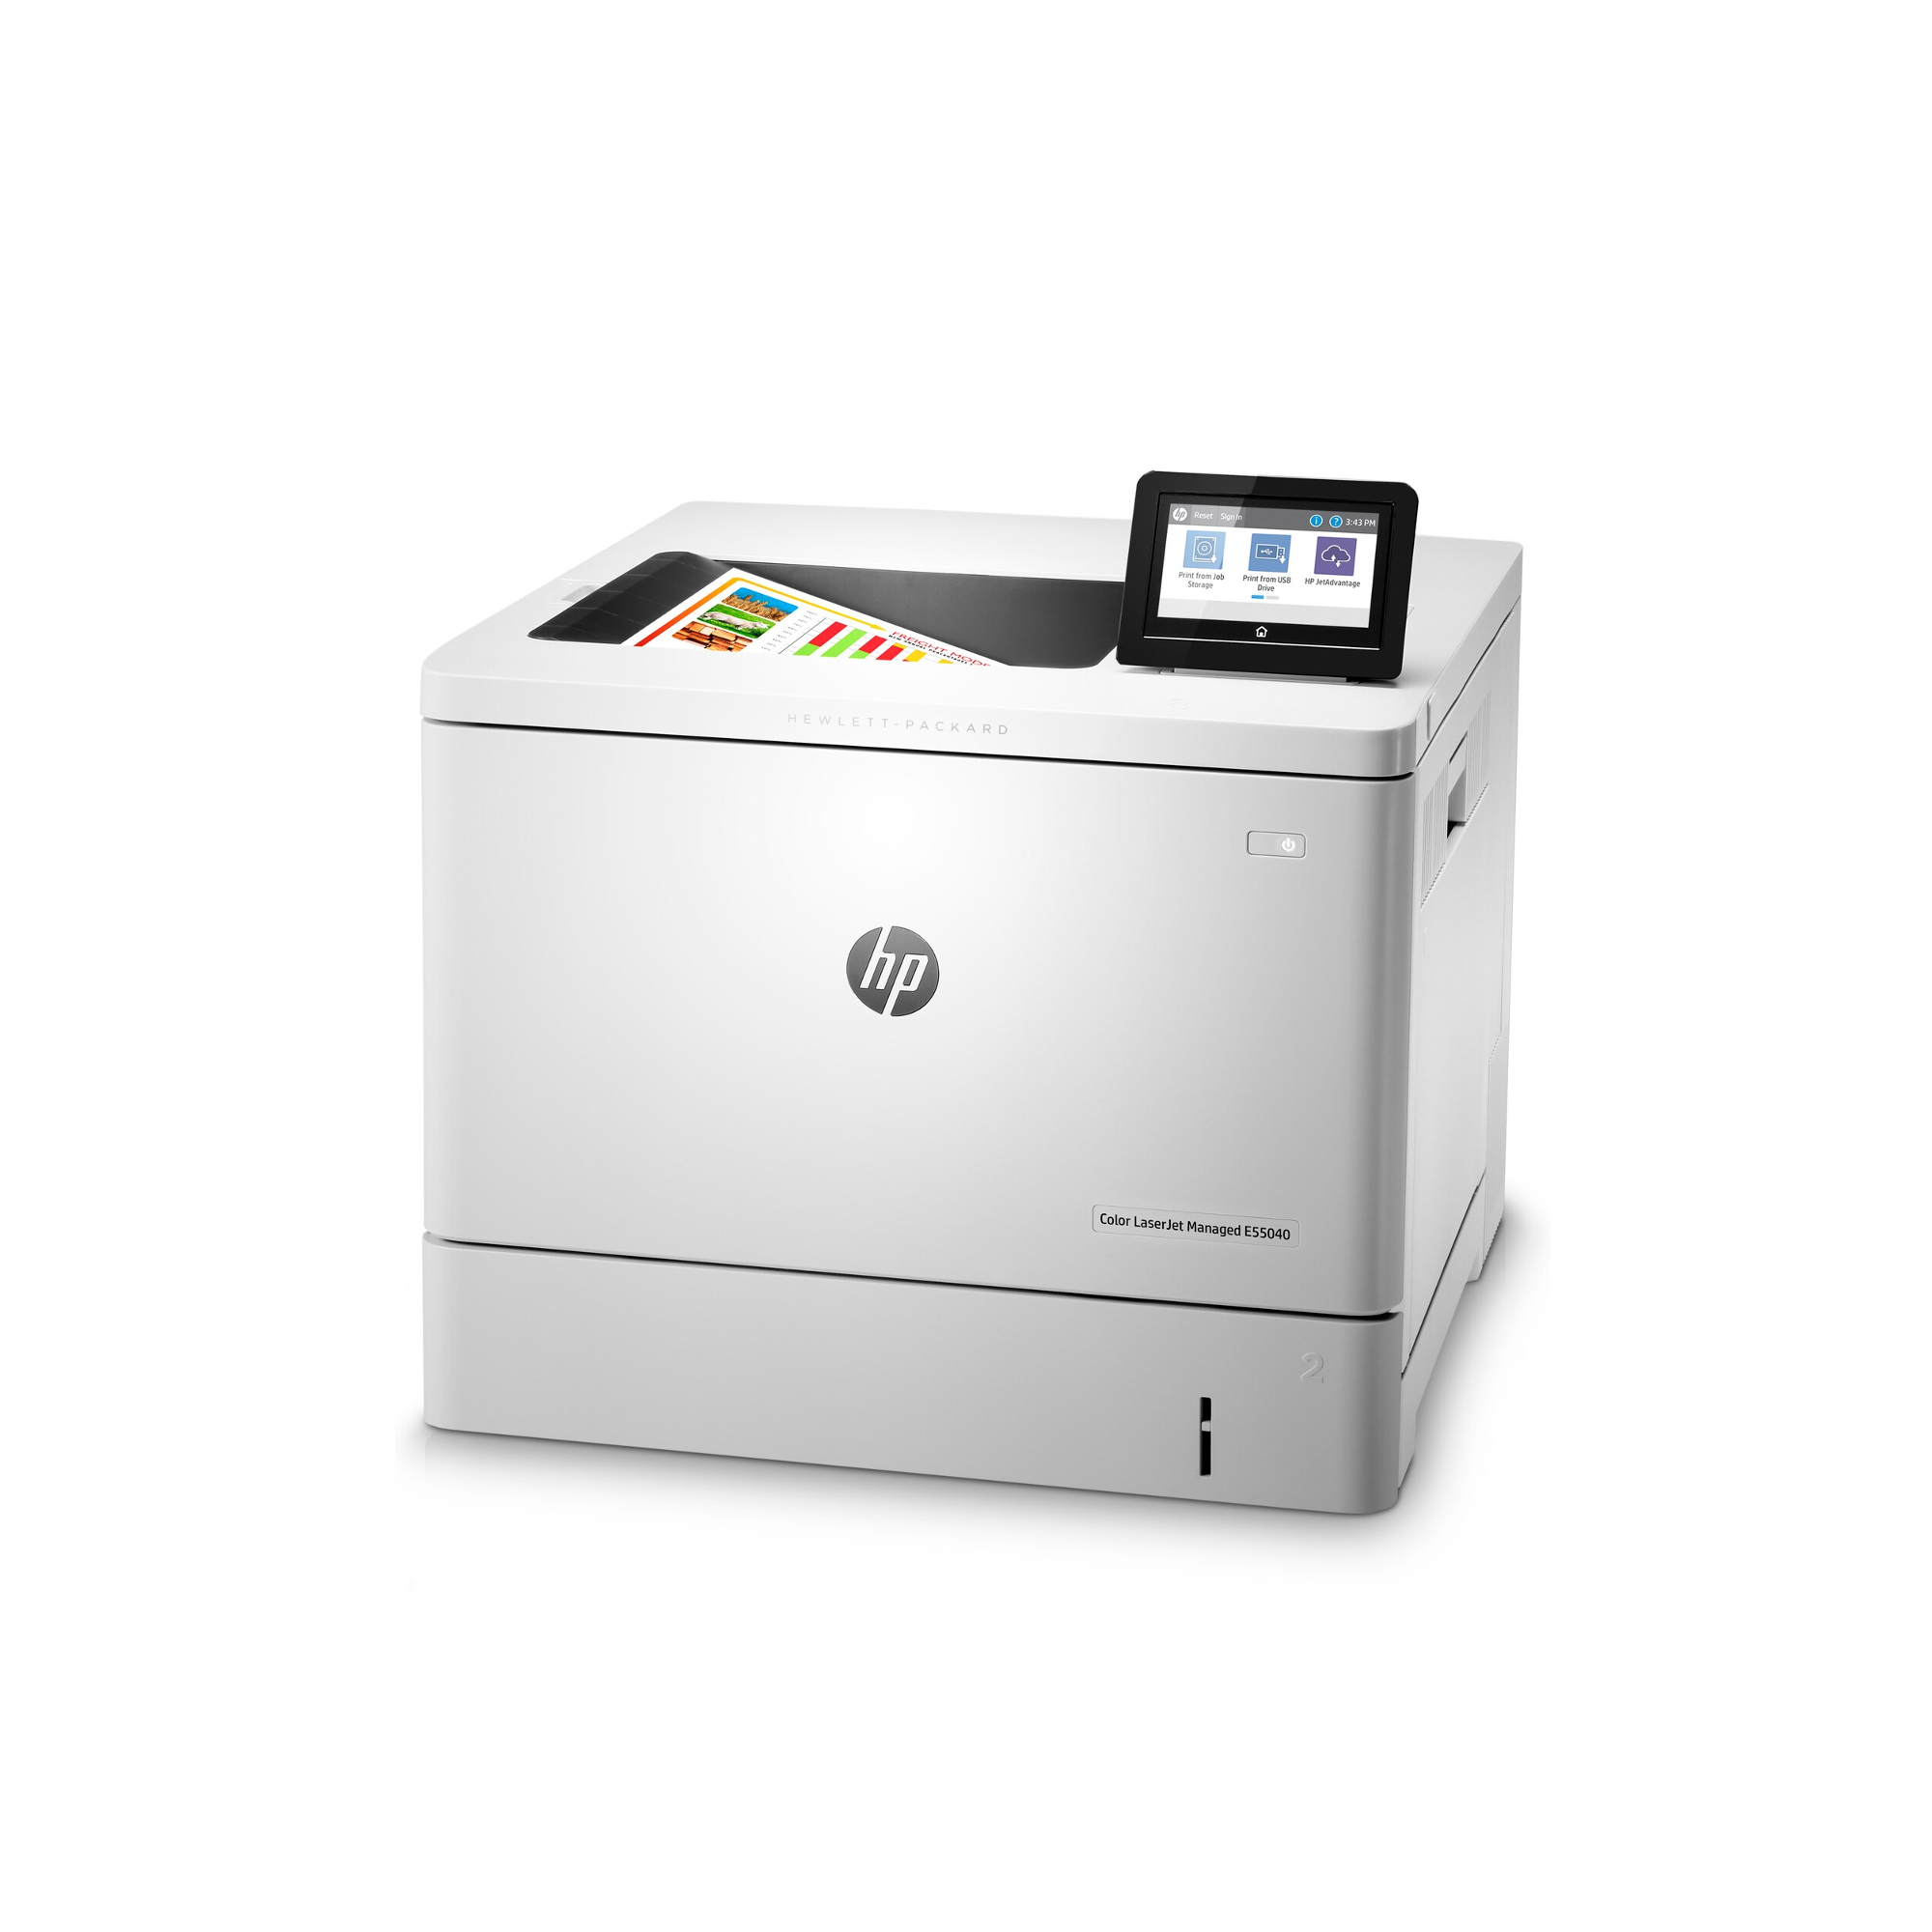 Noleggio Stampante HP Color LaserJet Managed E55040dw - Lyreco print services